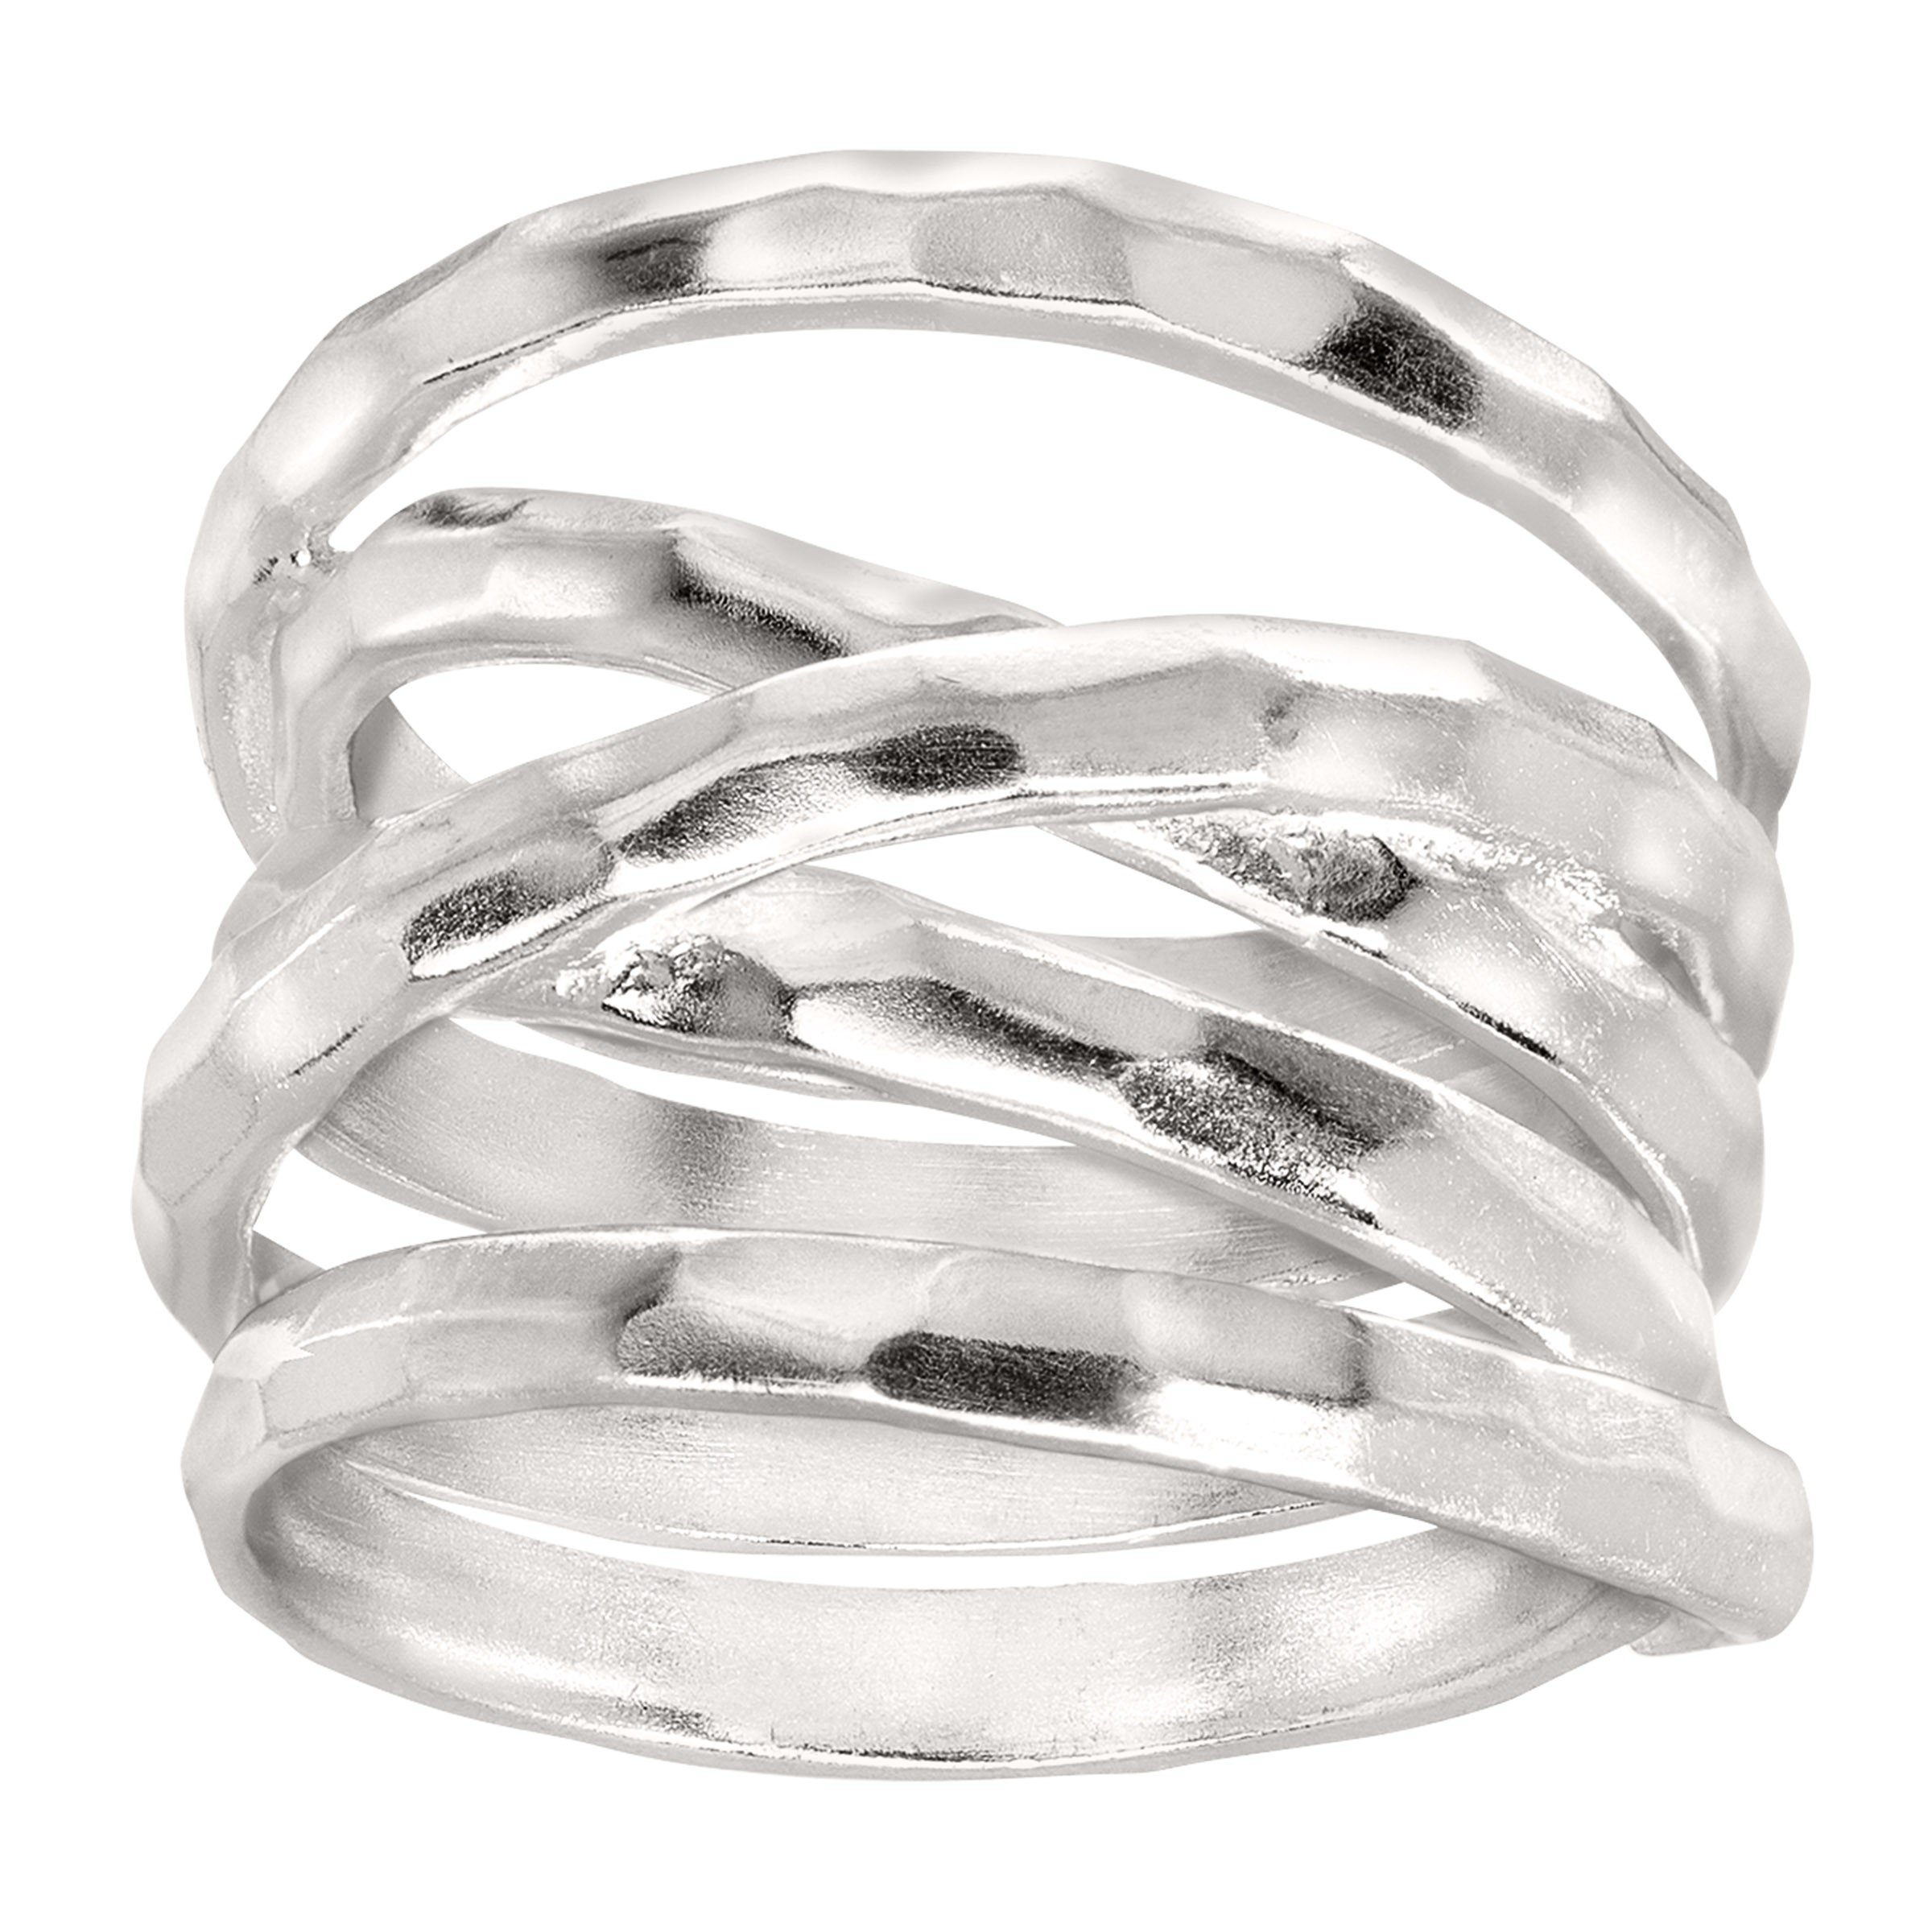 Silpada 'Wrapped Up' Sterling Silver Ring, Size 8 by Silpada